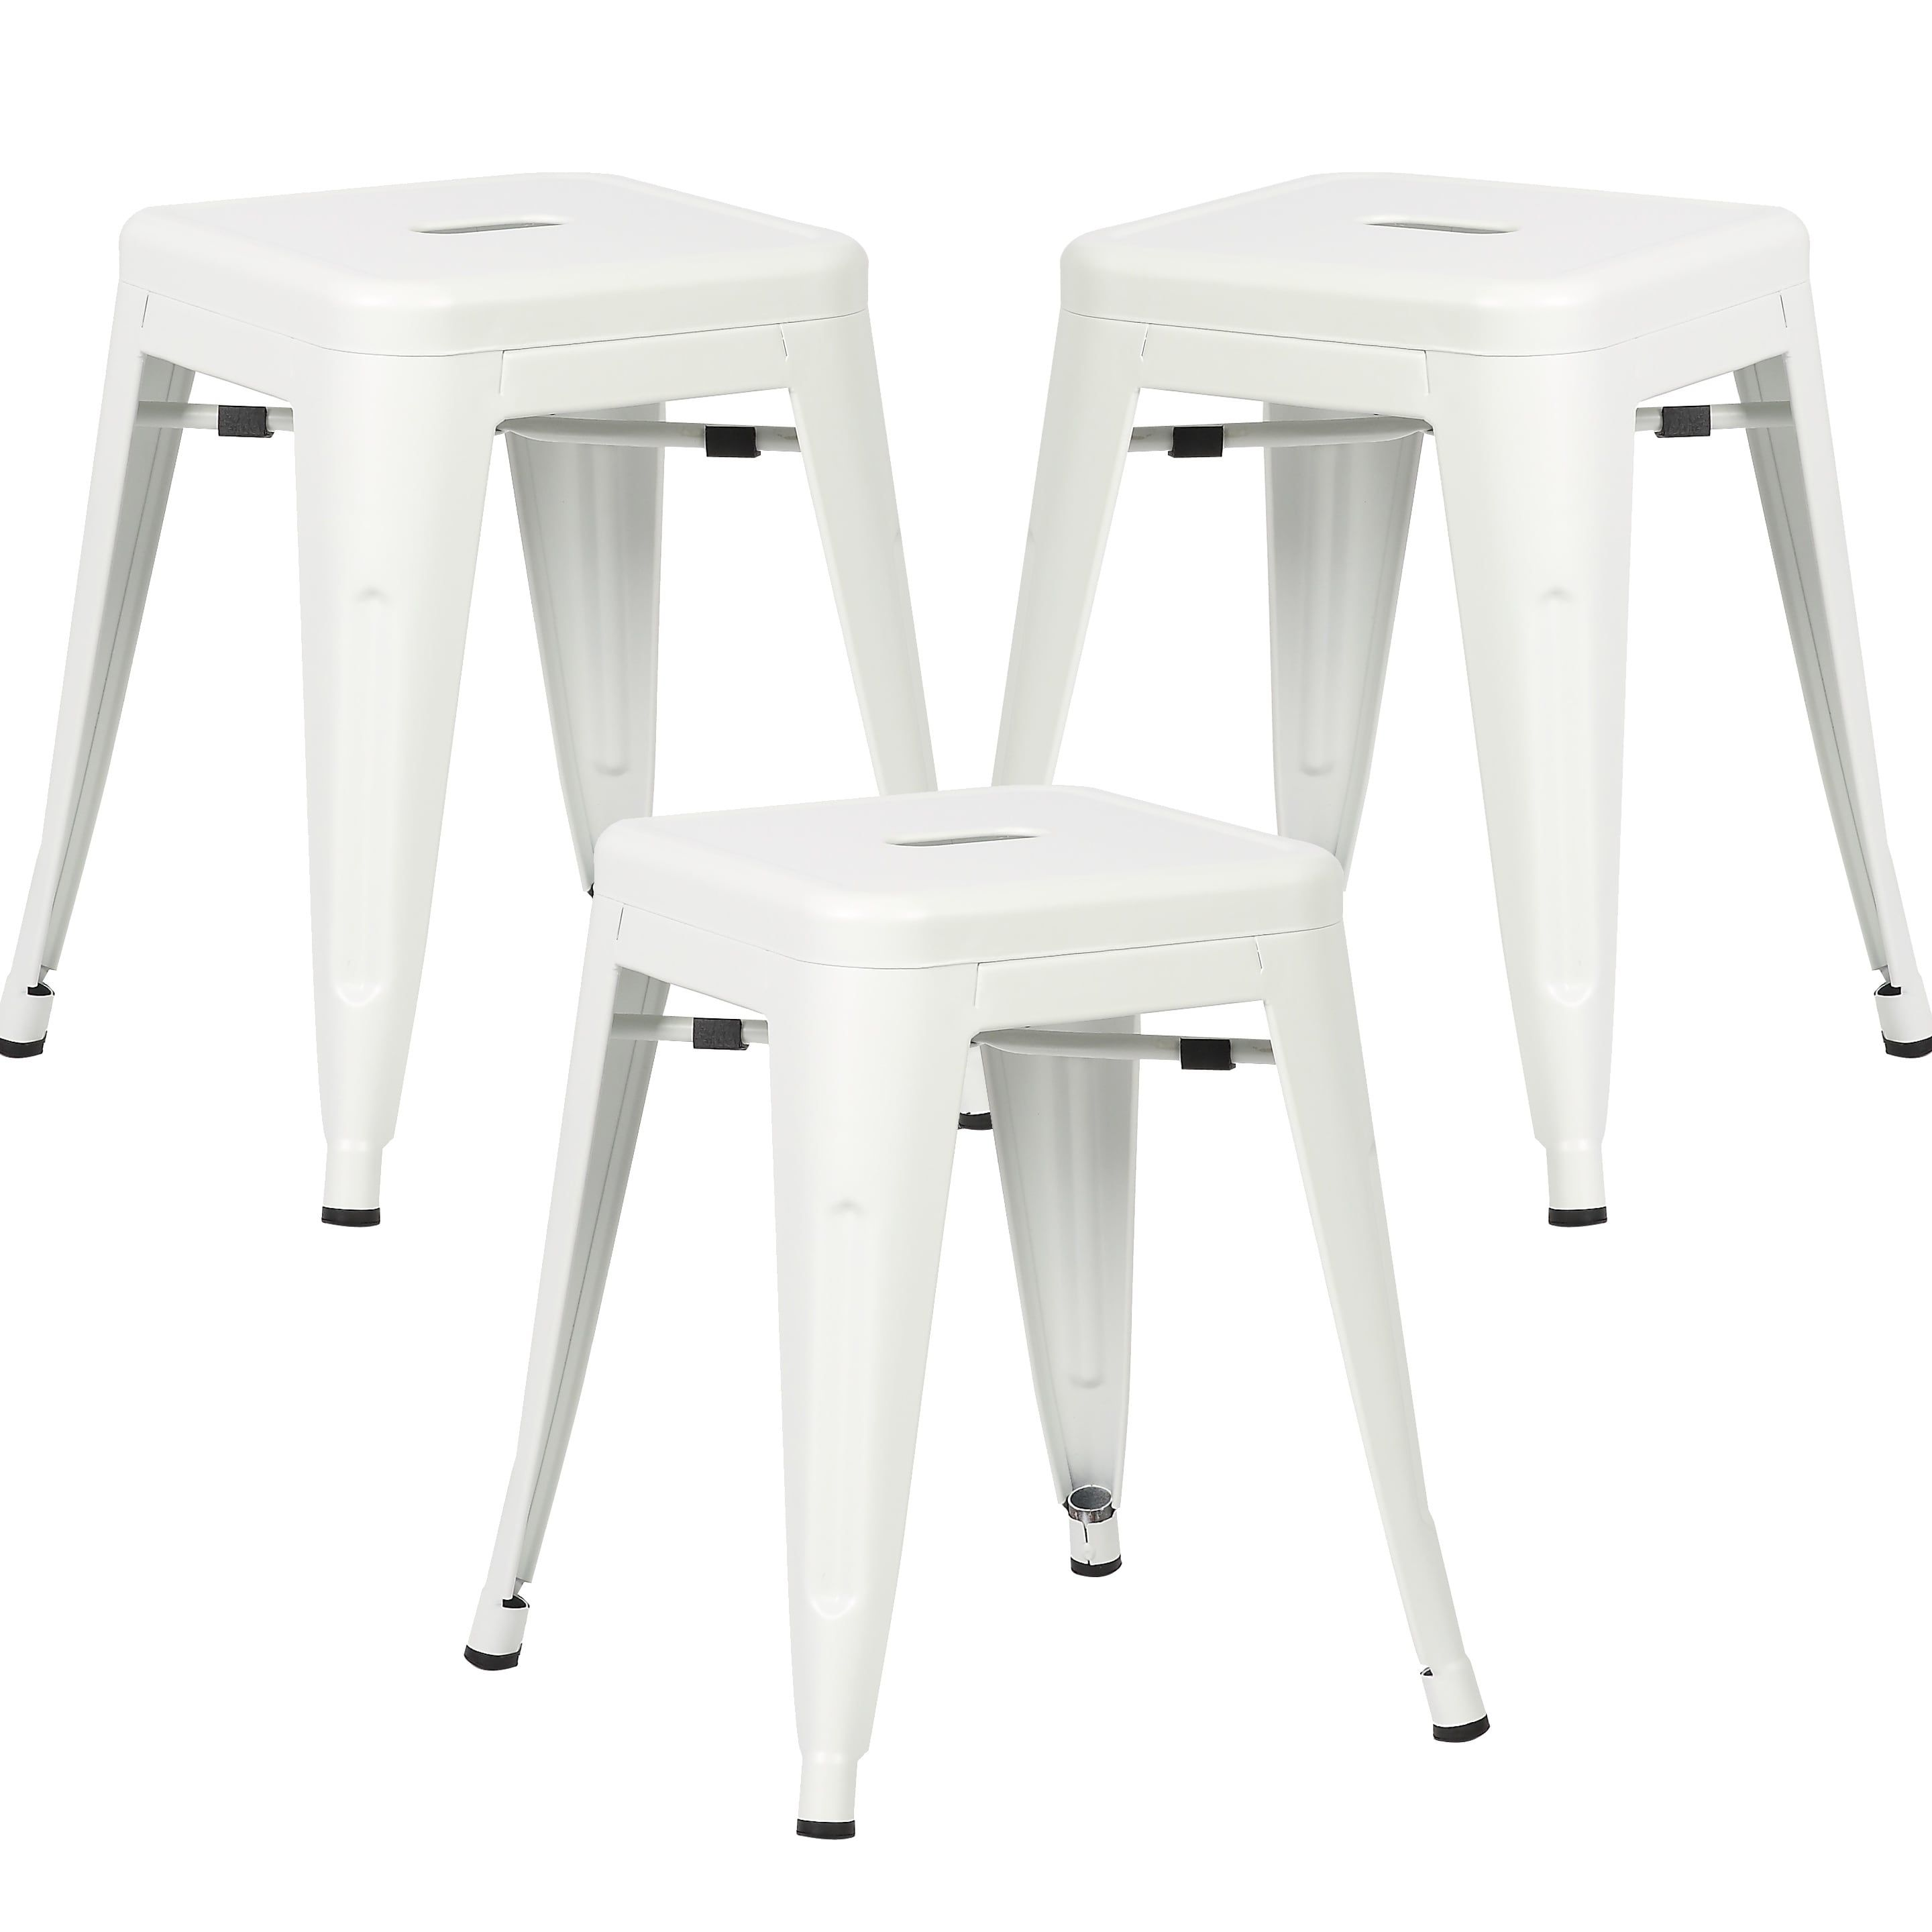 Set of 4 Poly and Bark Trattoria 18-inch Table Stool Matte Finish